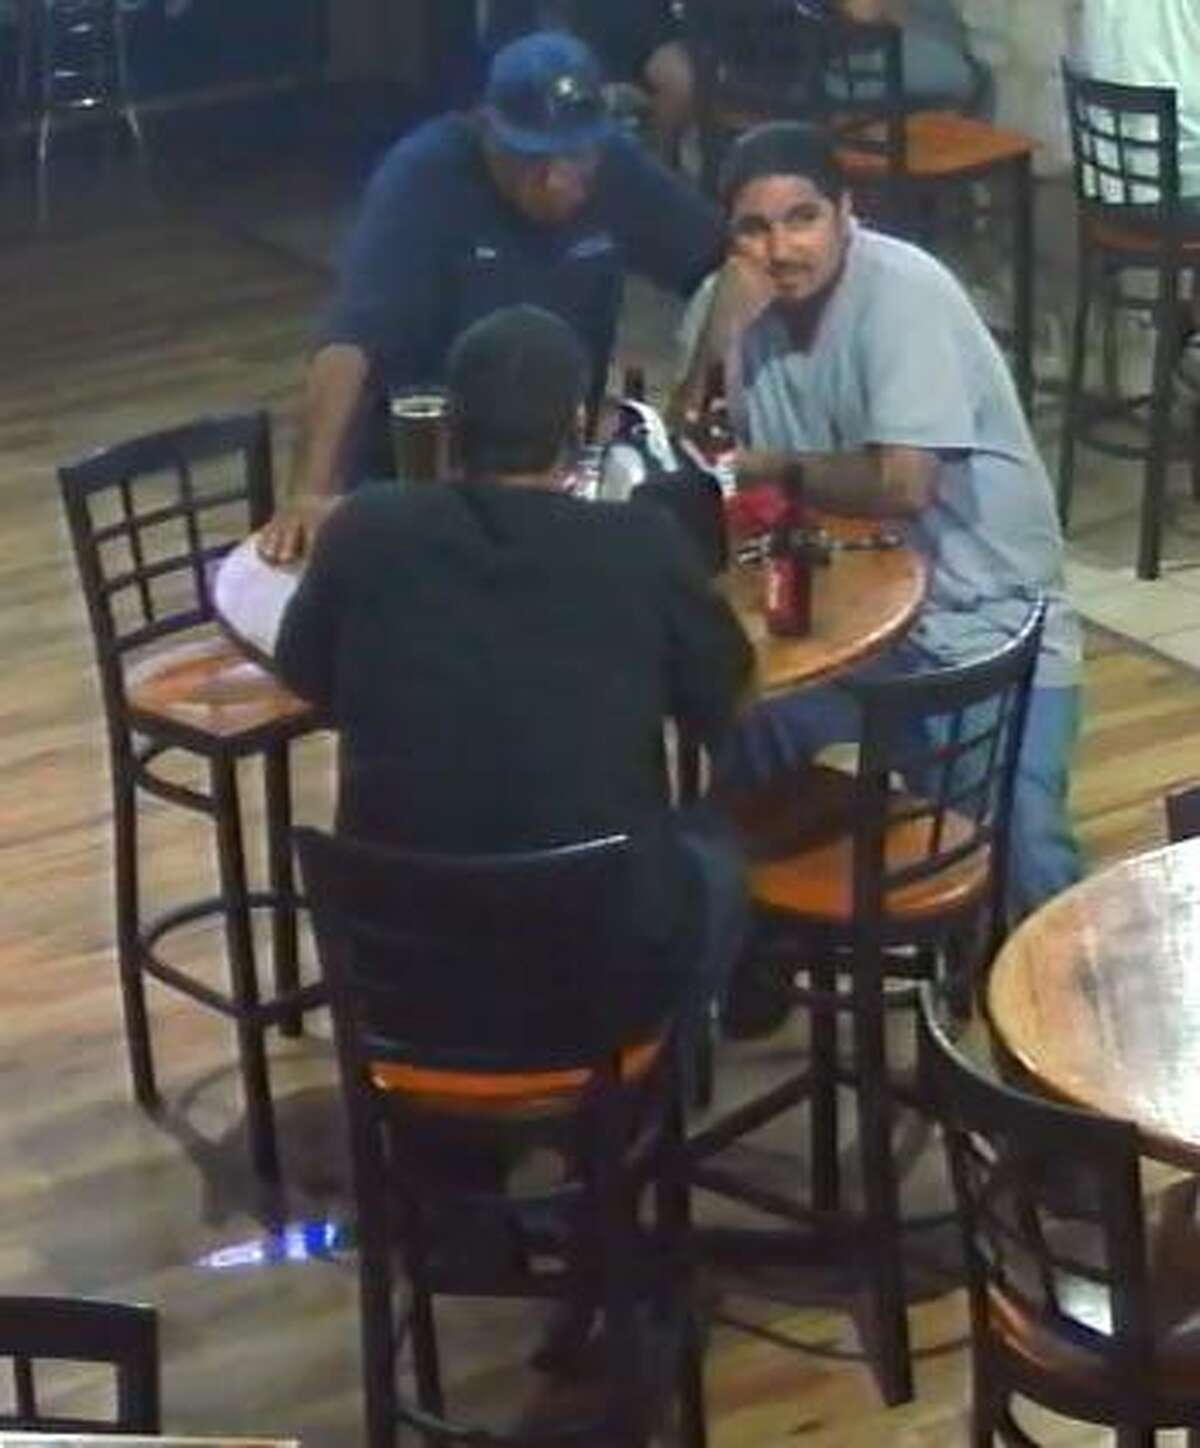 San Antonio Police are looking for three people connected to a robbery that occurred in July.